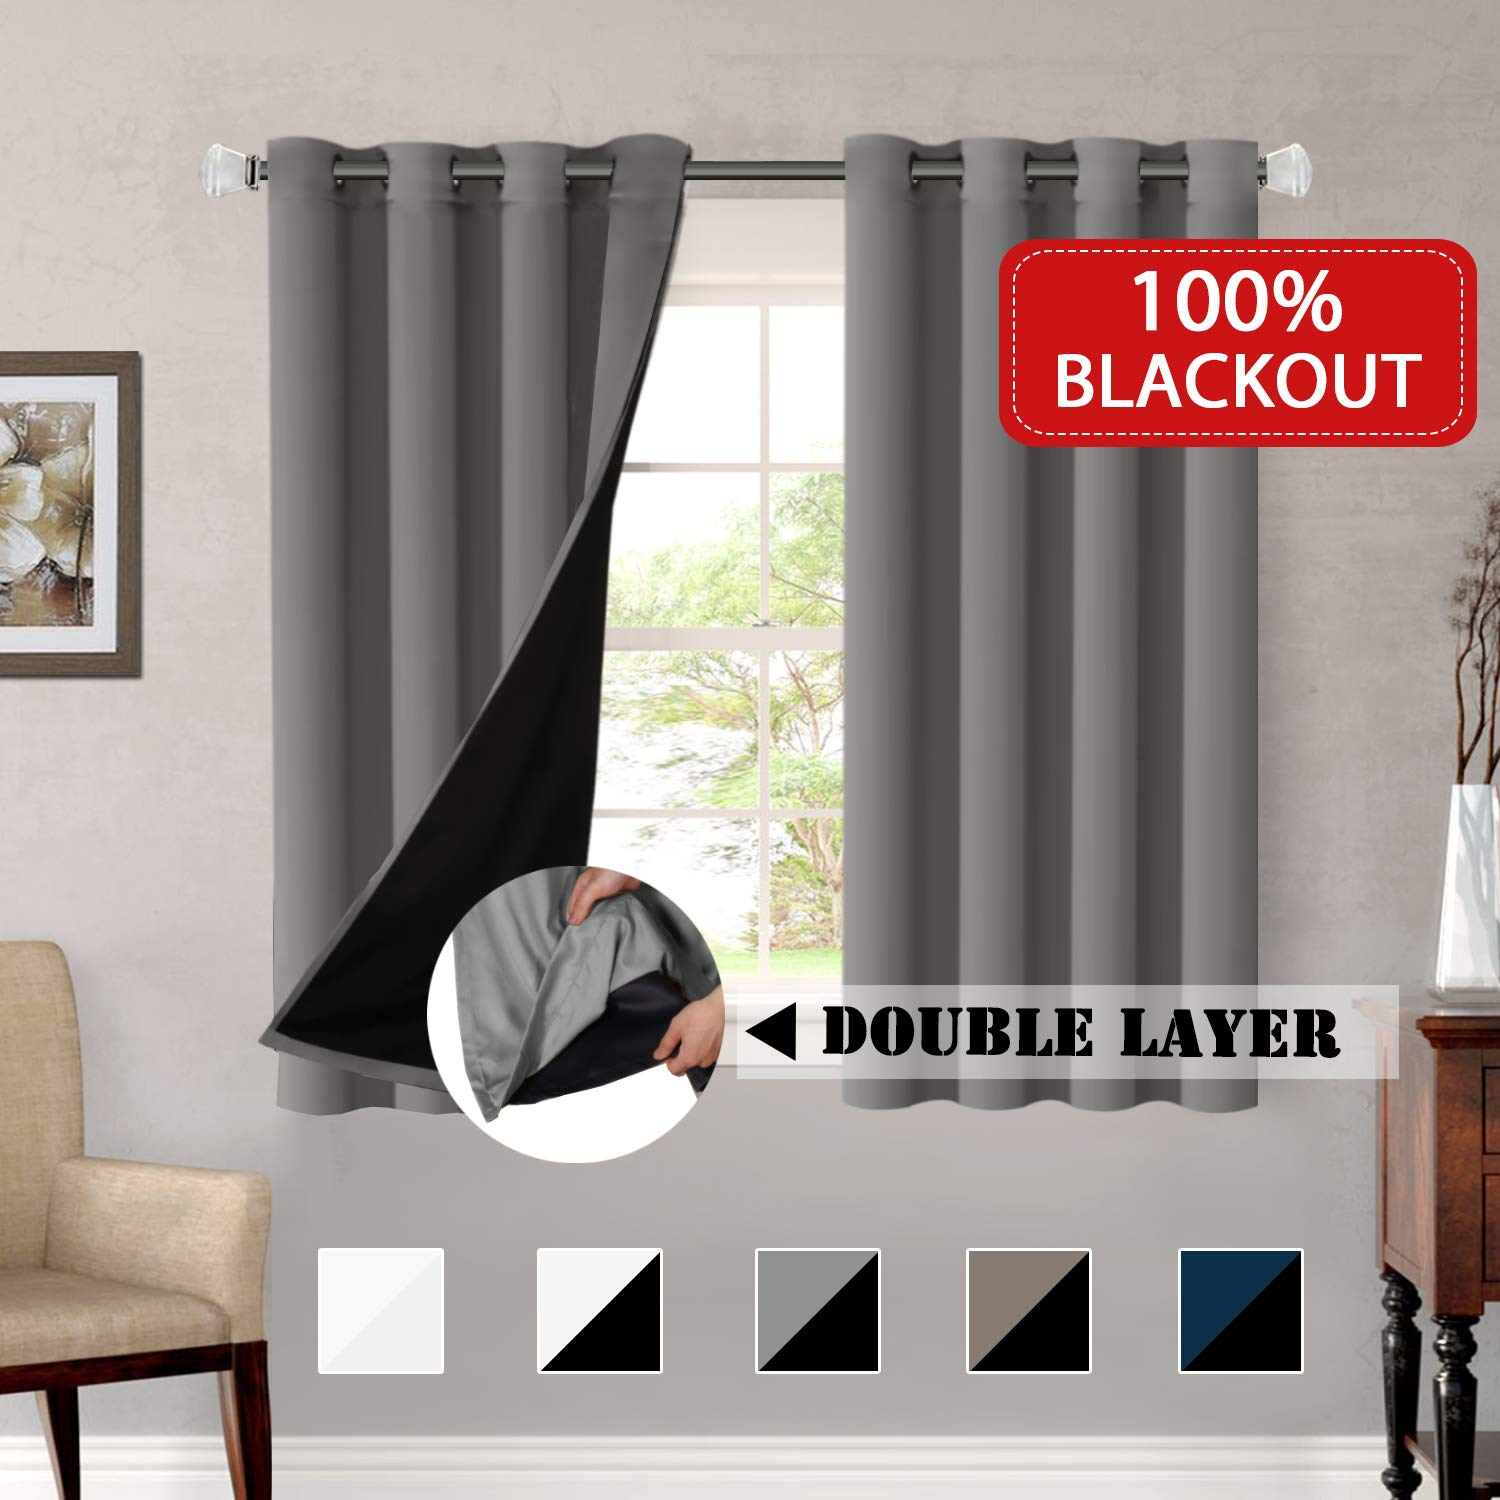 100% Blackout Window Curtain Panels Full Light Blocking Drapes with Black Liner for Bedroom / Living Room, Blackout Curtains 63 Length Primitive Country Decor Thermal Insulated (Grey, Sold by Pair)